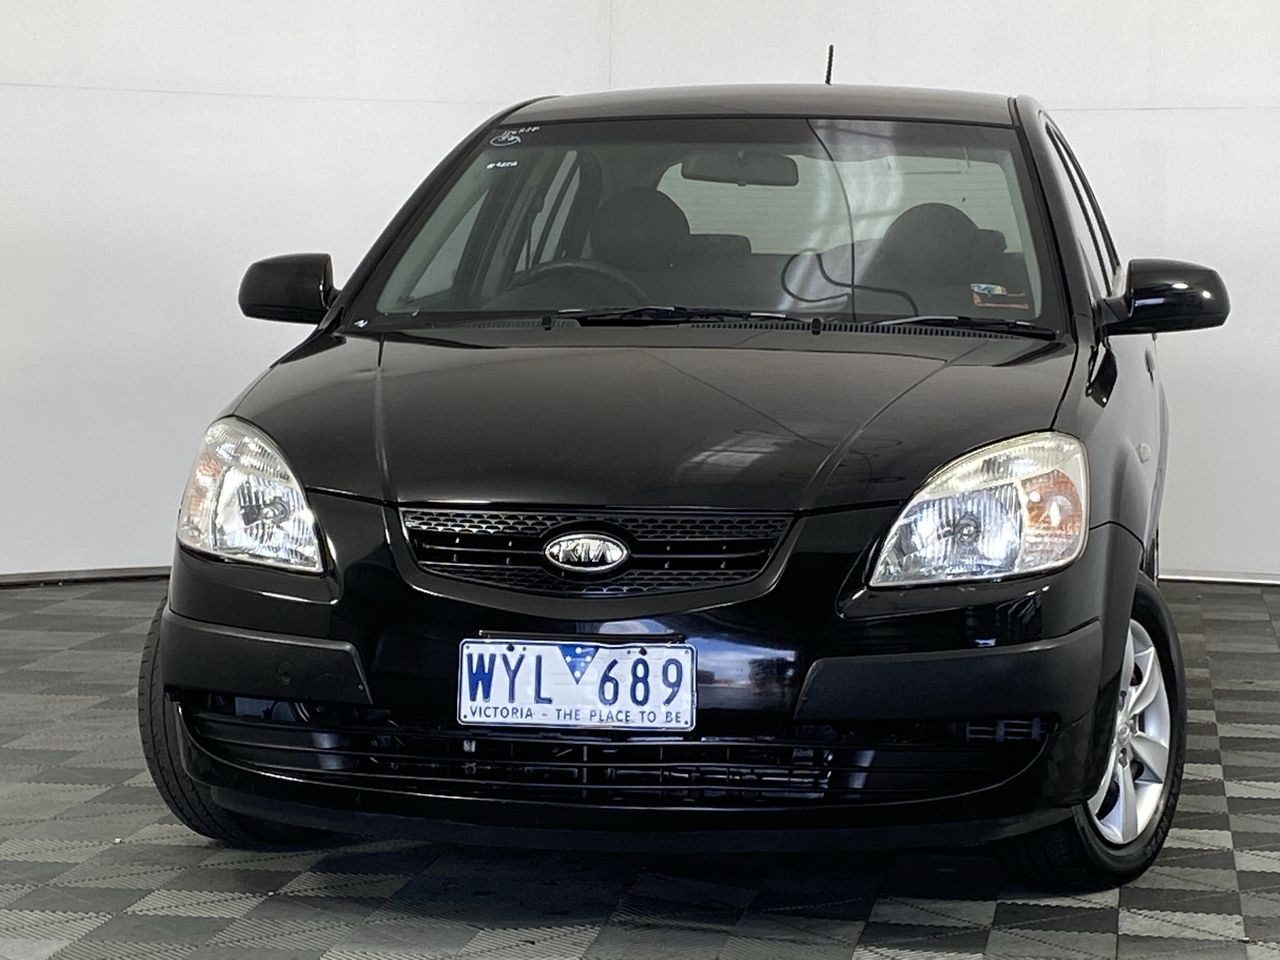 2009 Kia Rio EX JB Manual Hatchback